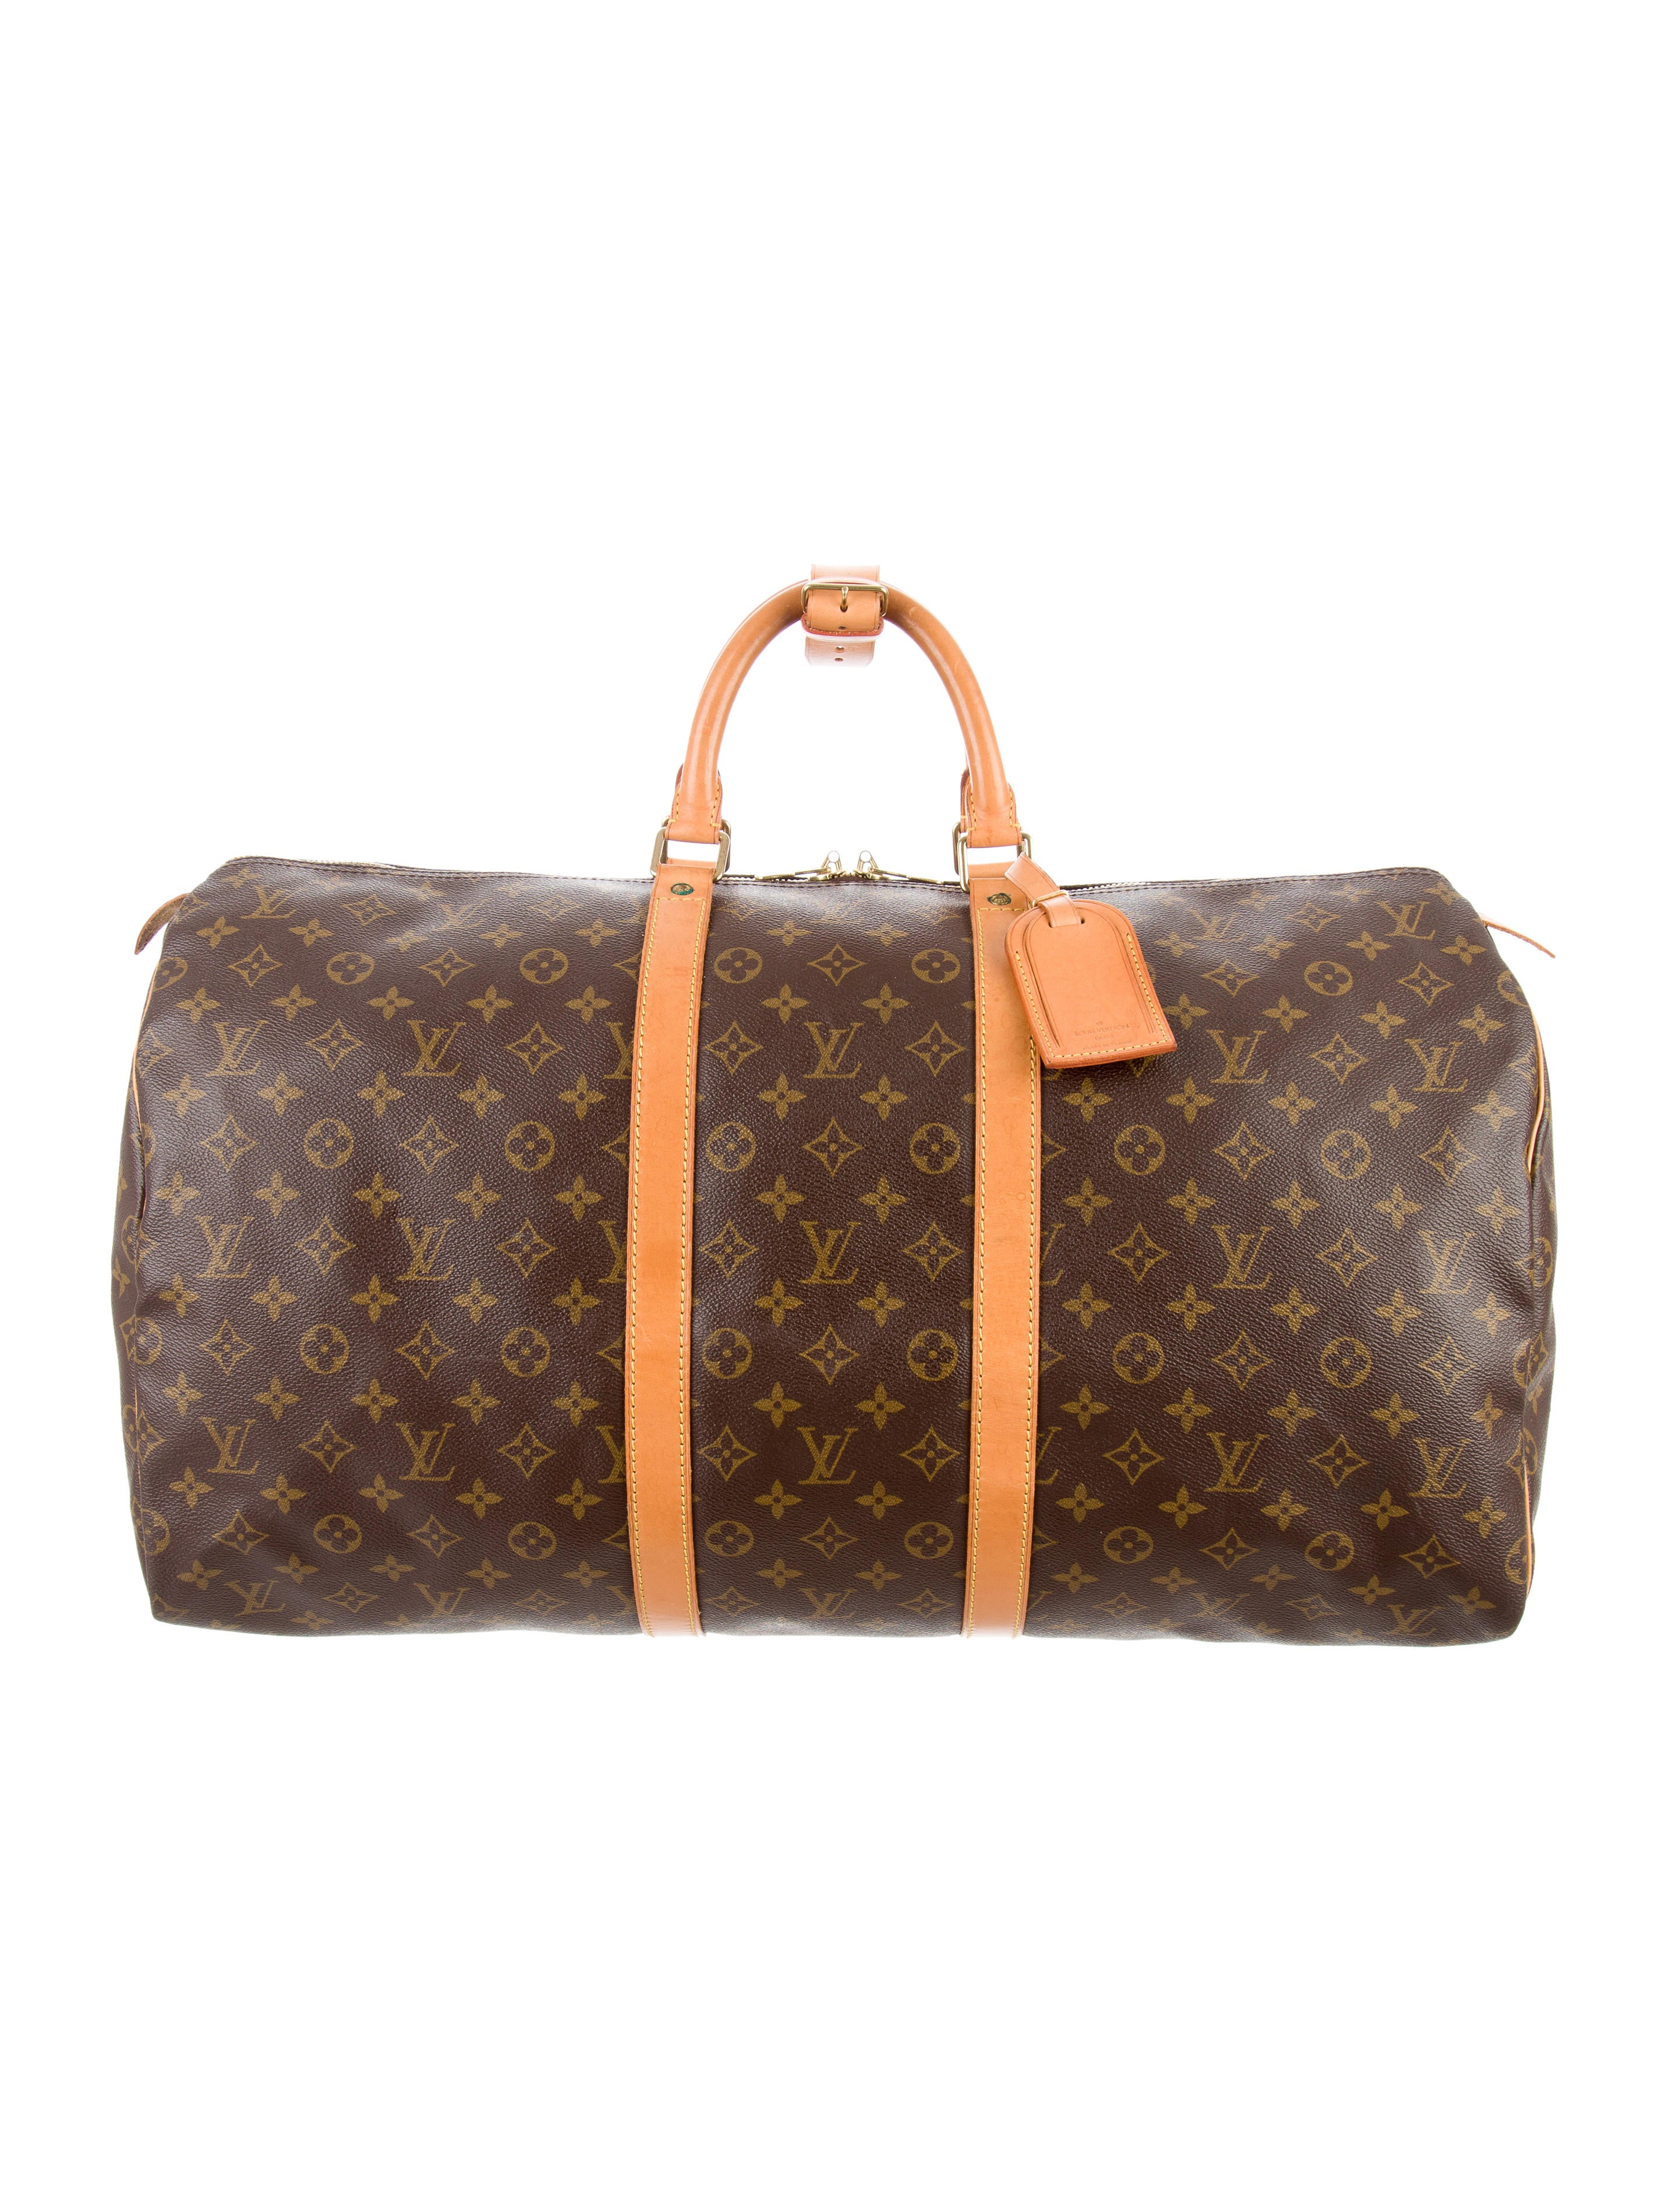 louis vuitton monogram keepall bandouli re 55 handbags lou122092 the realreal. Black Bedroom Furniture Sets. Home Design Ideas